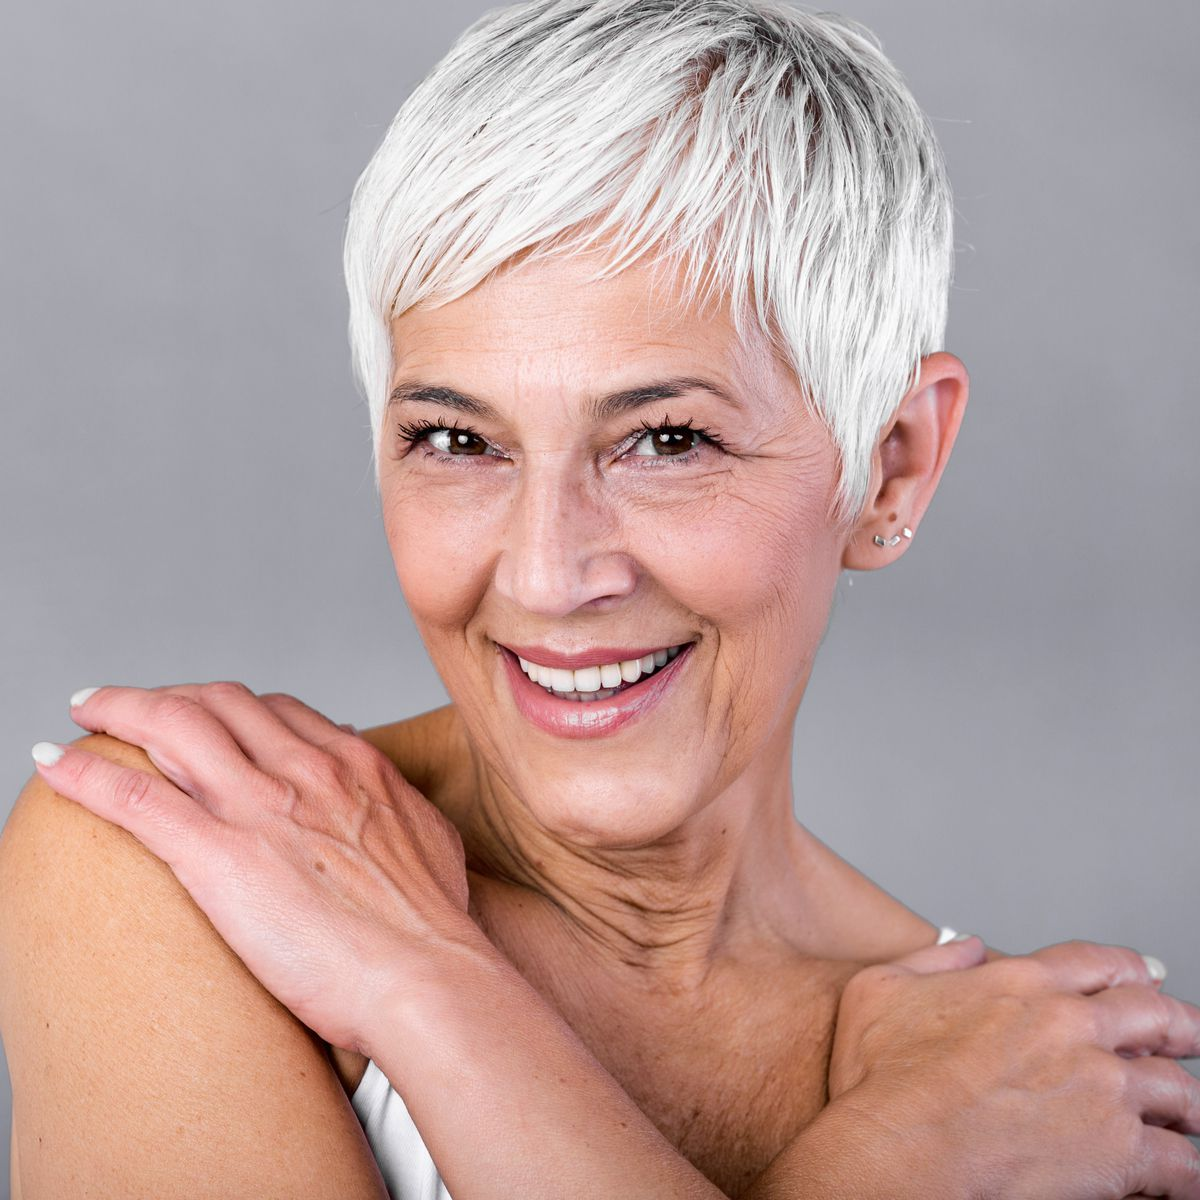 lose up portrait of happy with beaming smile female pensioner